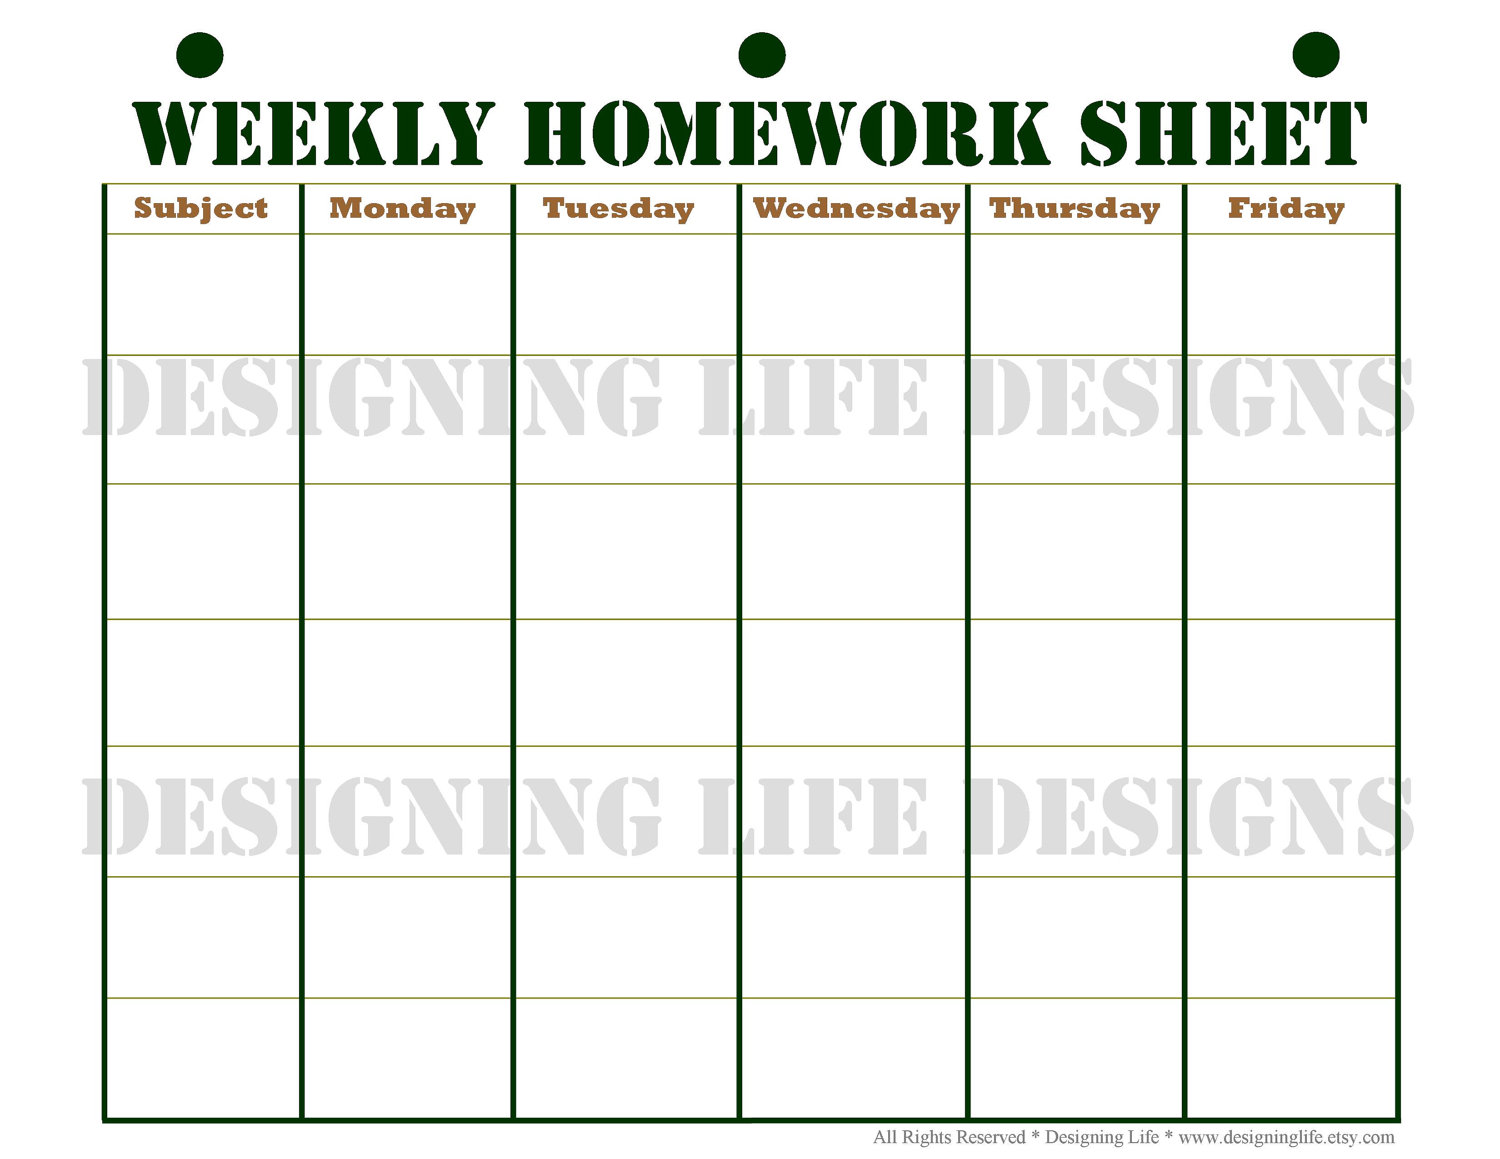 8 Images of Student Homework Sheet Template Printable